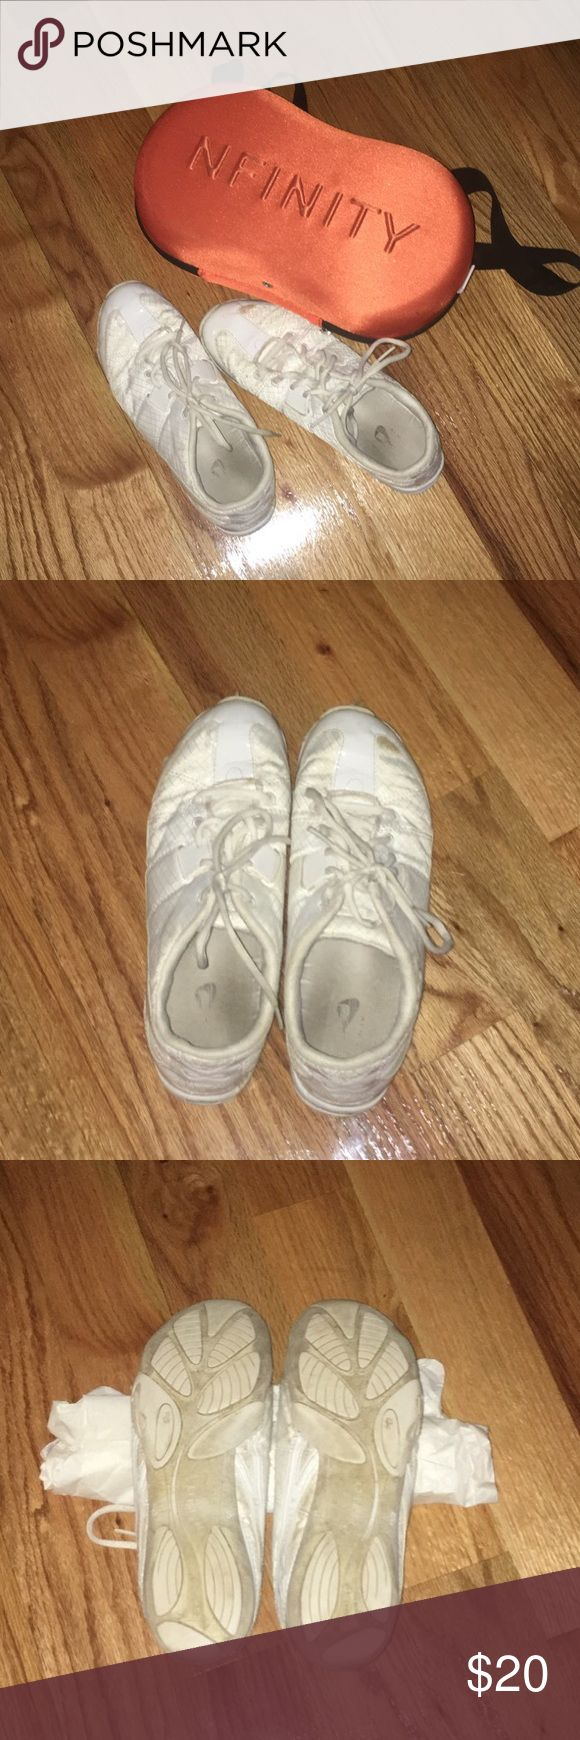 Nfinity cheer shoes Nfinity cheer shoes -Great condition. Used for one season. -size 9 1/2 --------------------------------------- -will negotiate  -If you have any questions just ask me NFINITY Shoes Athletic Shoes